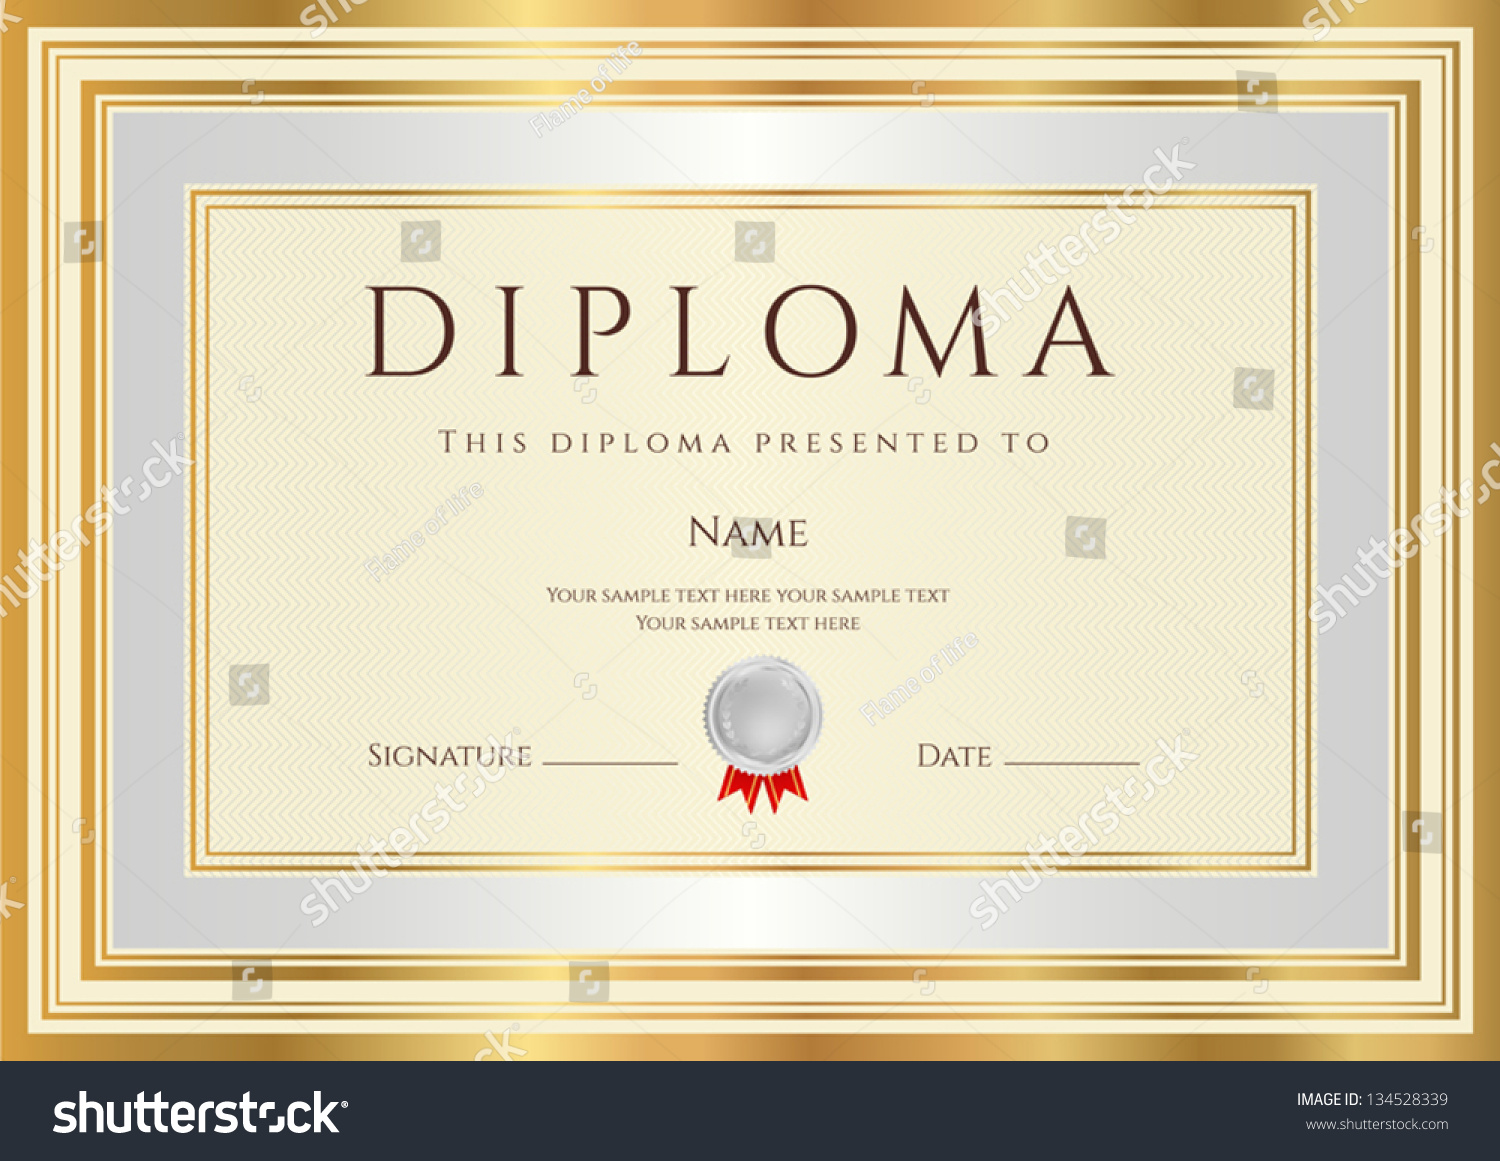 Royalty free diploma certificate template with 134528339 stock diploma certificate template with guilloche pattern silver and gold border background design usable yadclub Choice Image